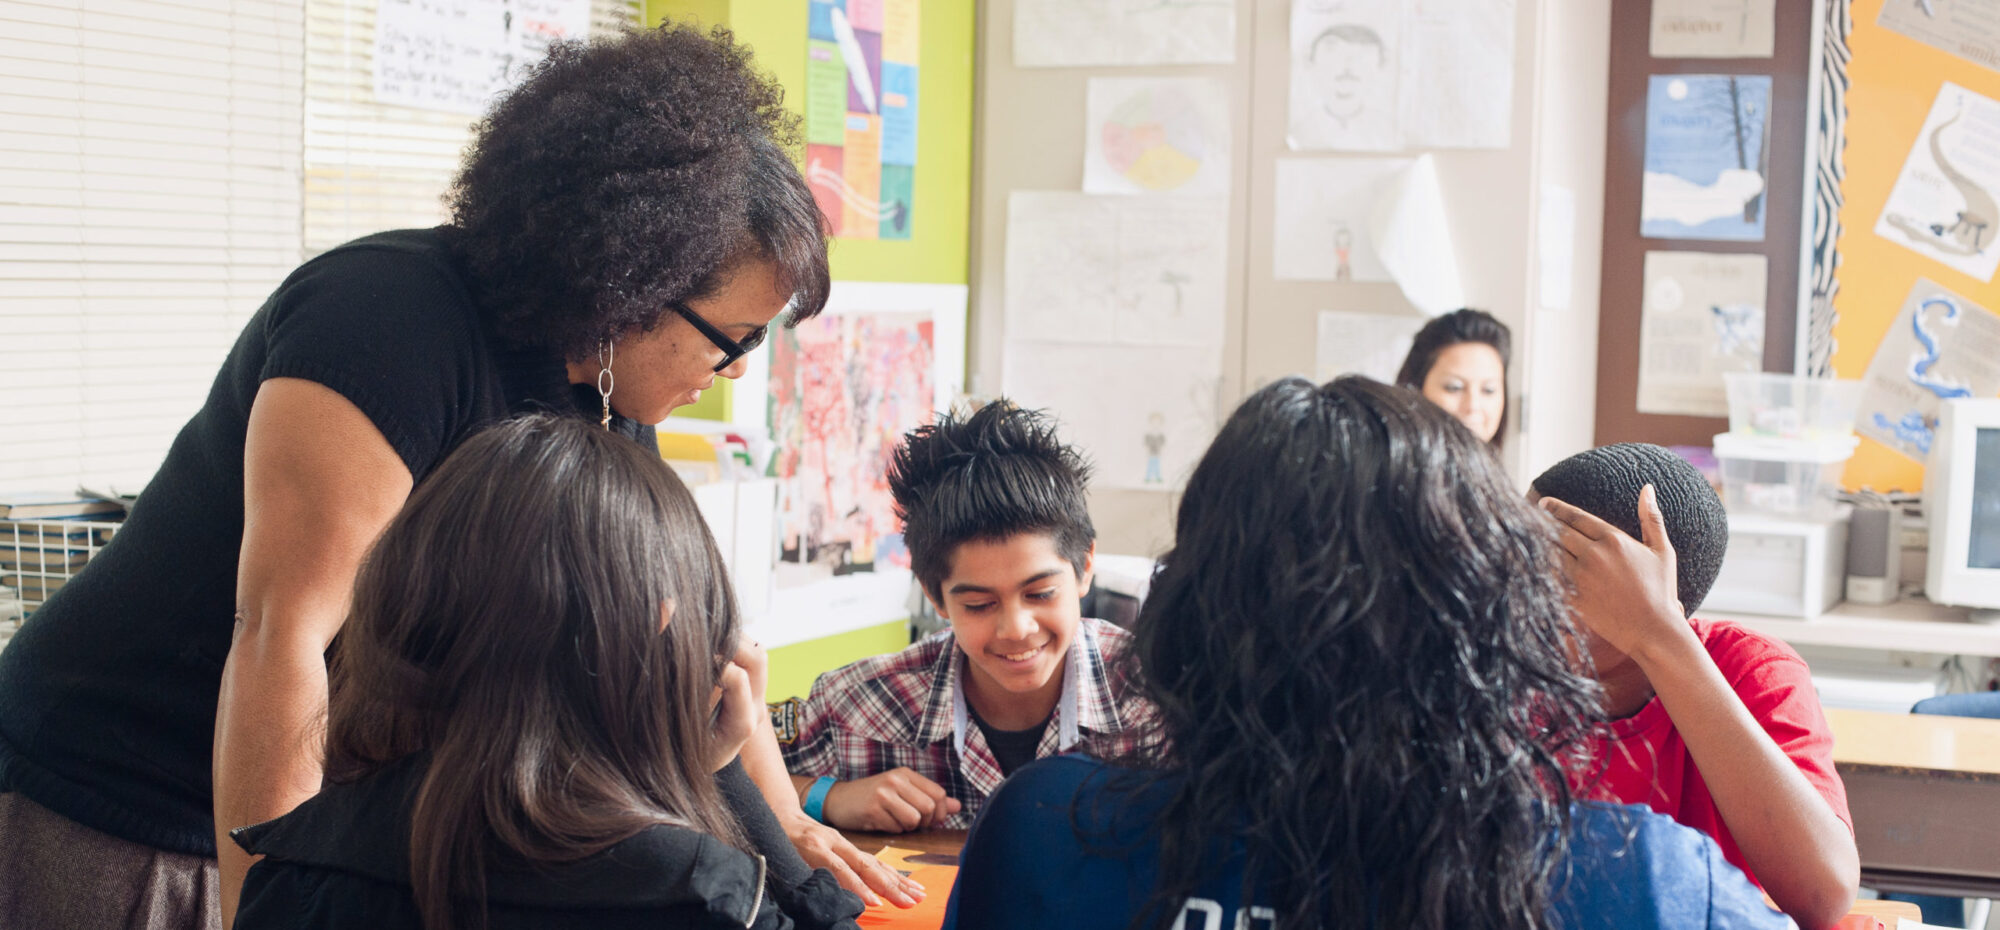 Female teacher working with high school students sitting in desk facing one another.